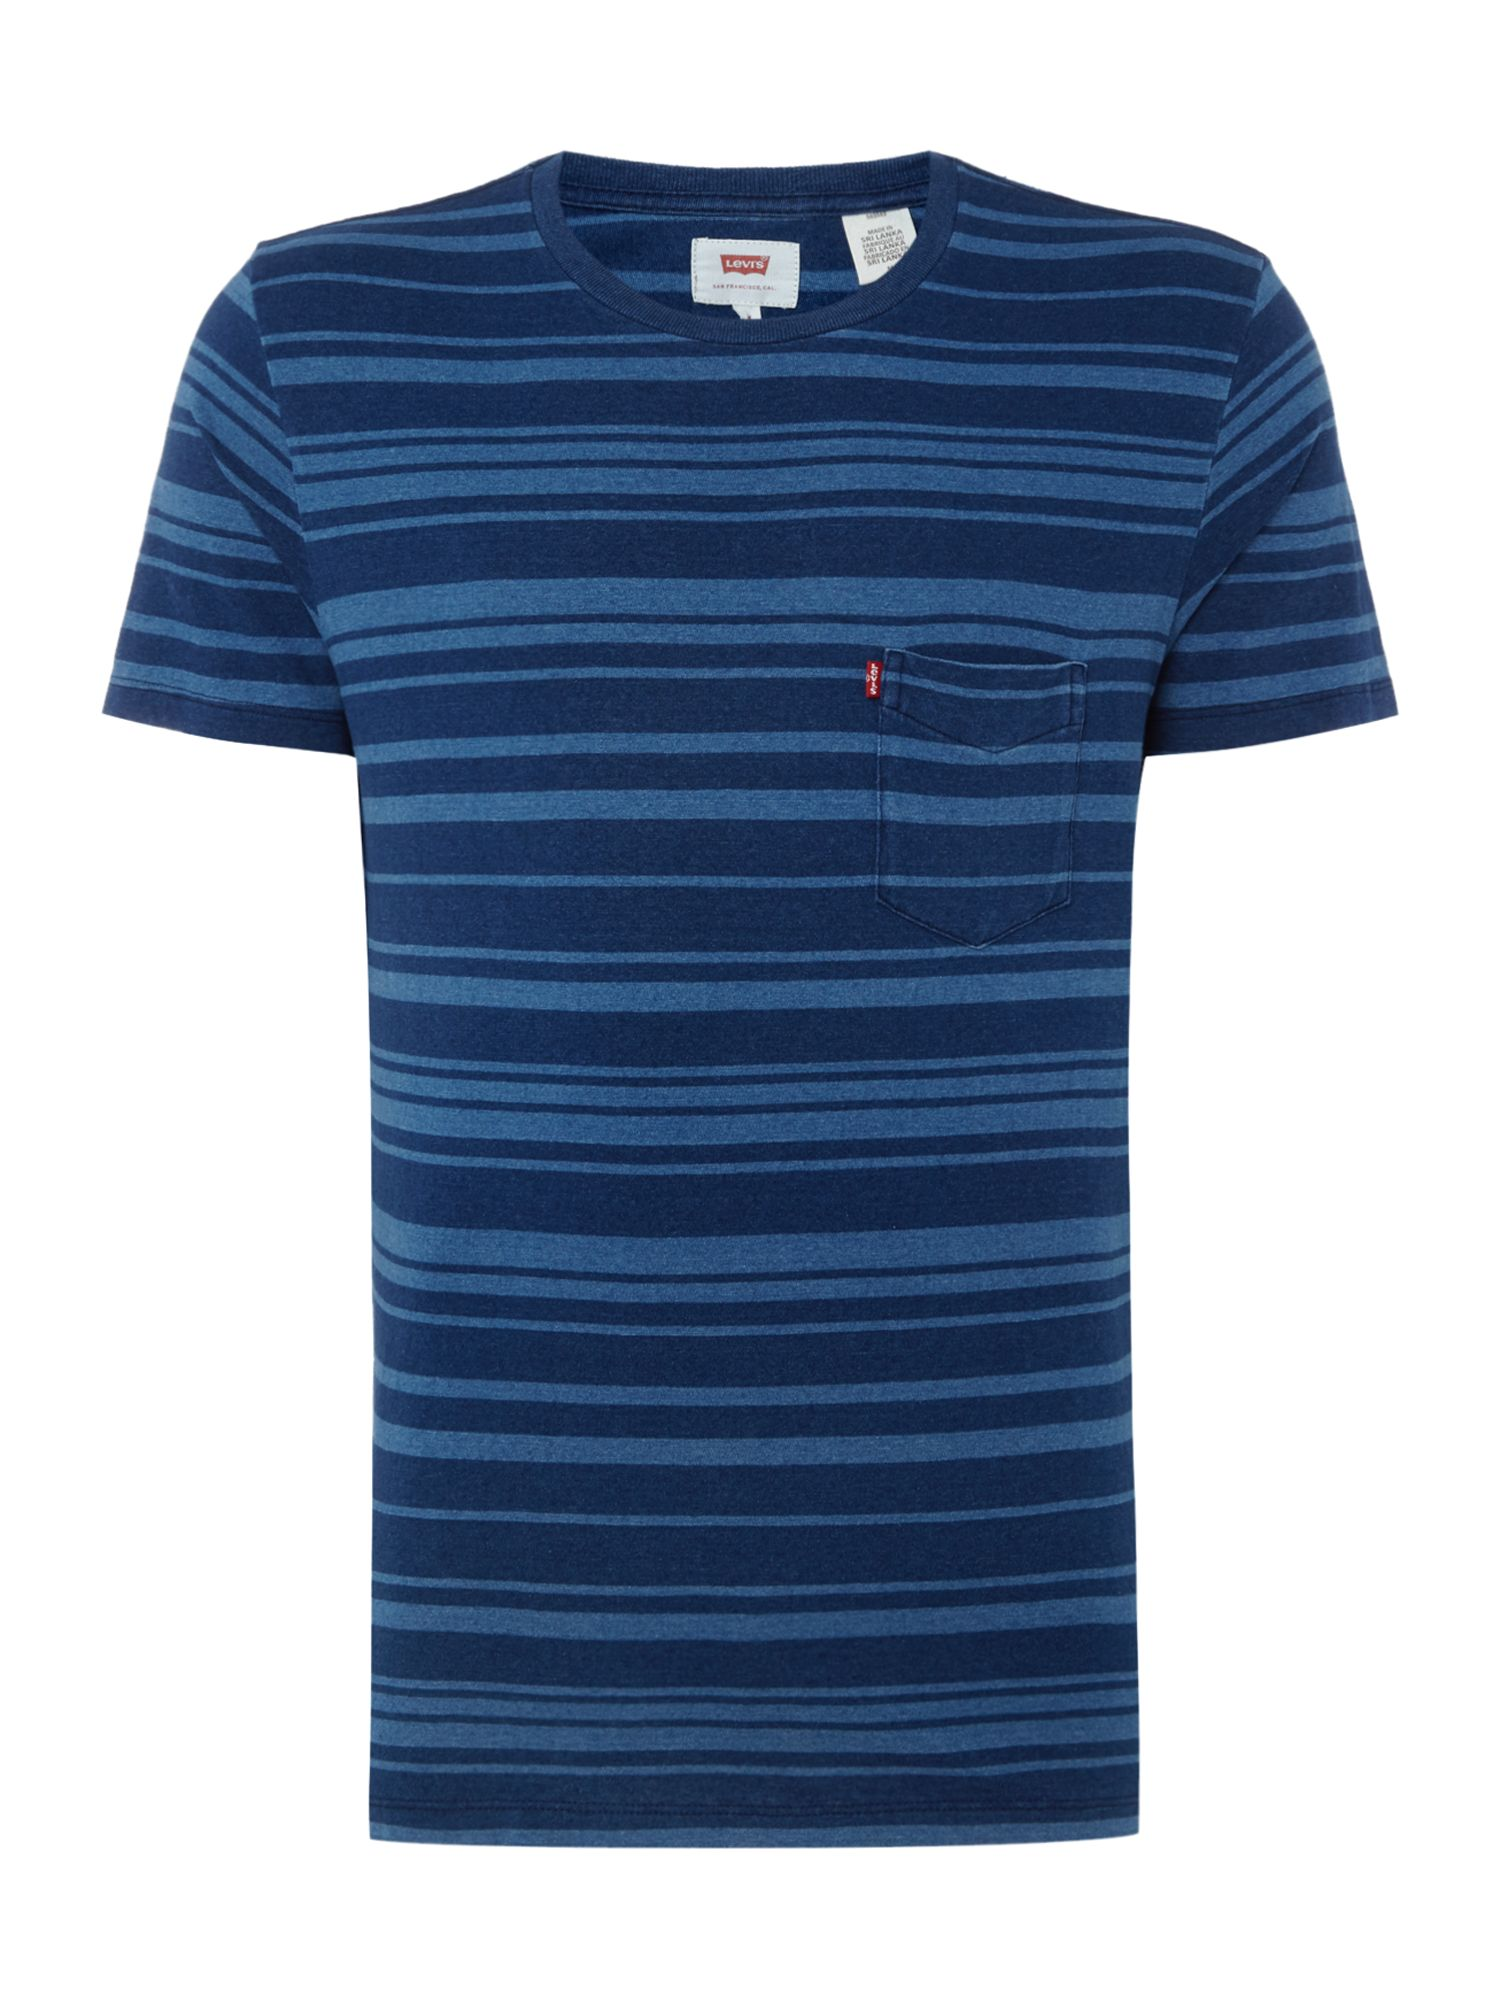 Men's Levi's Sunset pocket striped t-shirt, Blue